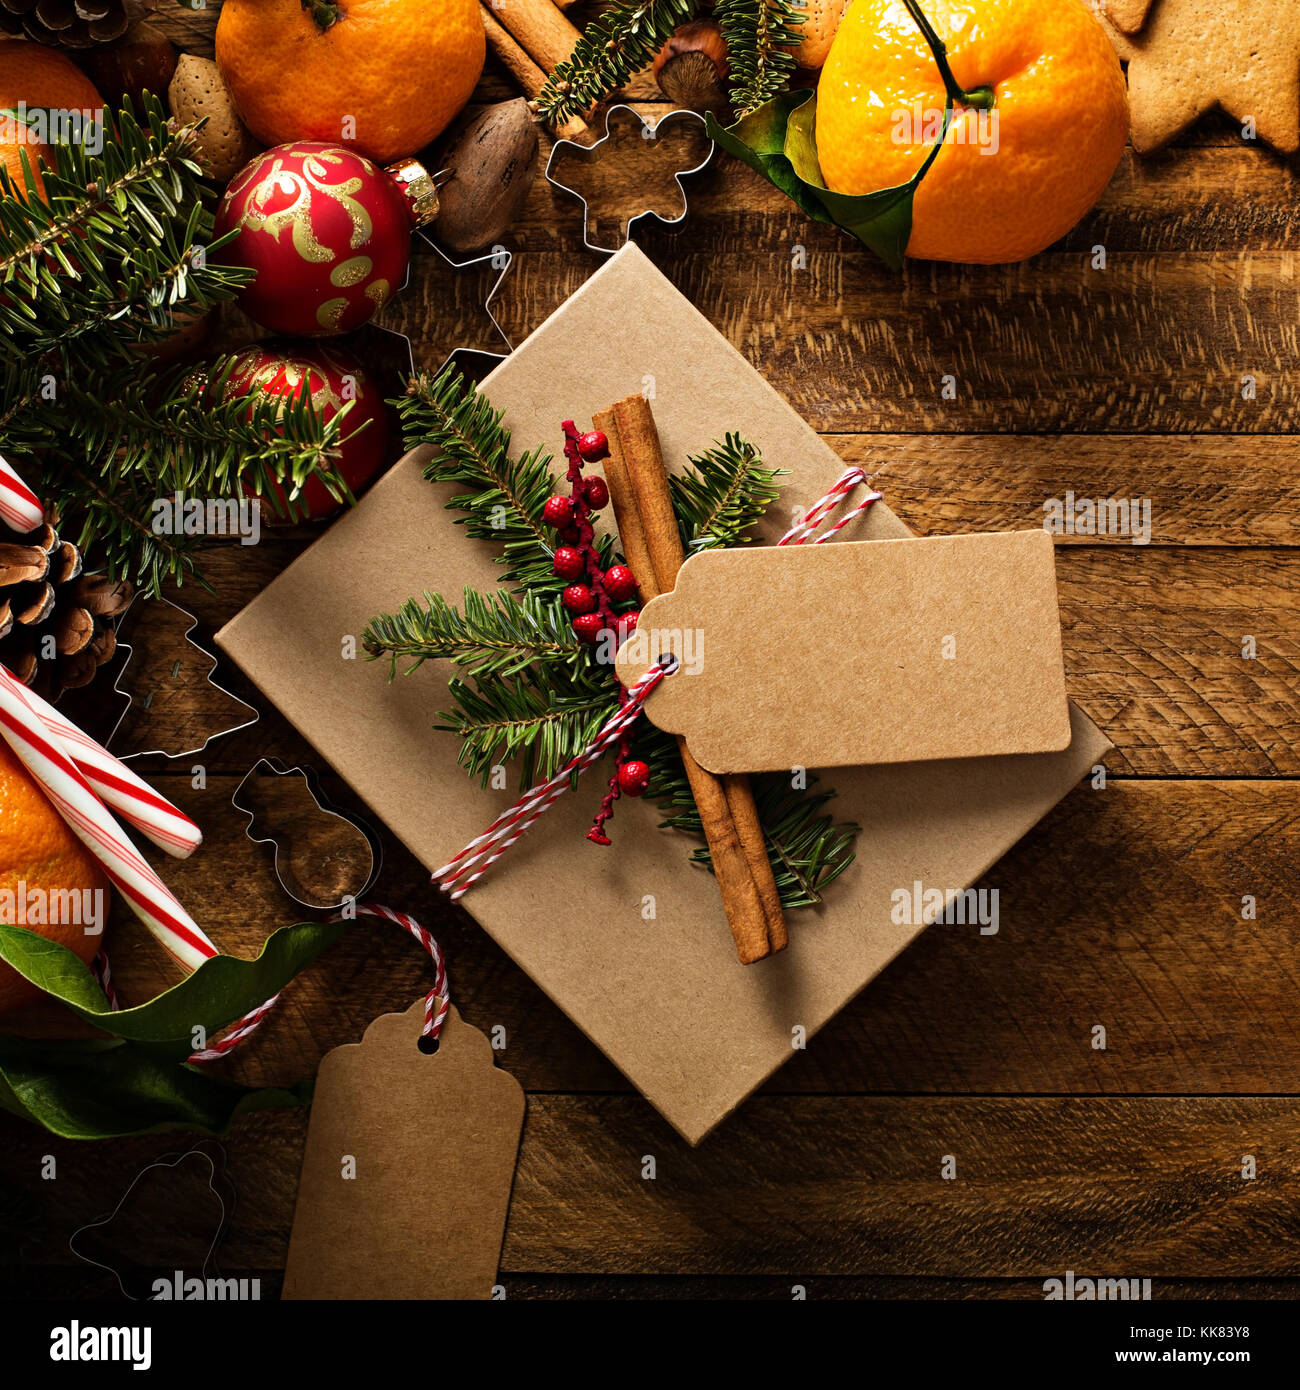 Christmas background with oranges, candy canes and decorations Stock Photo